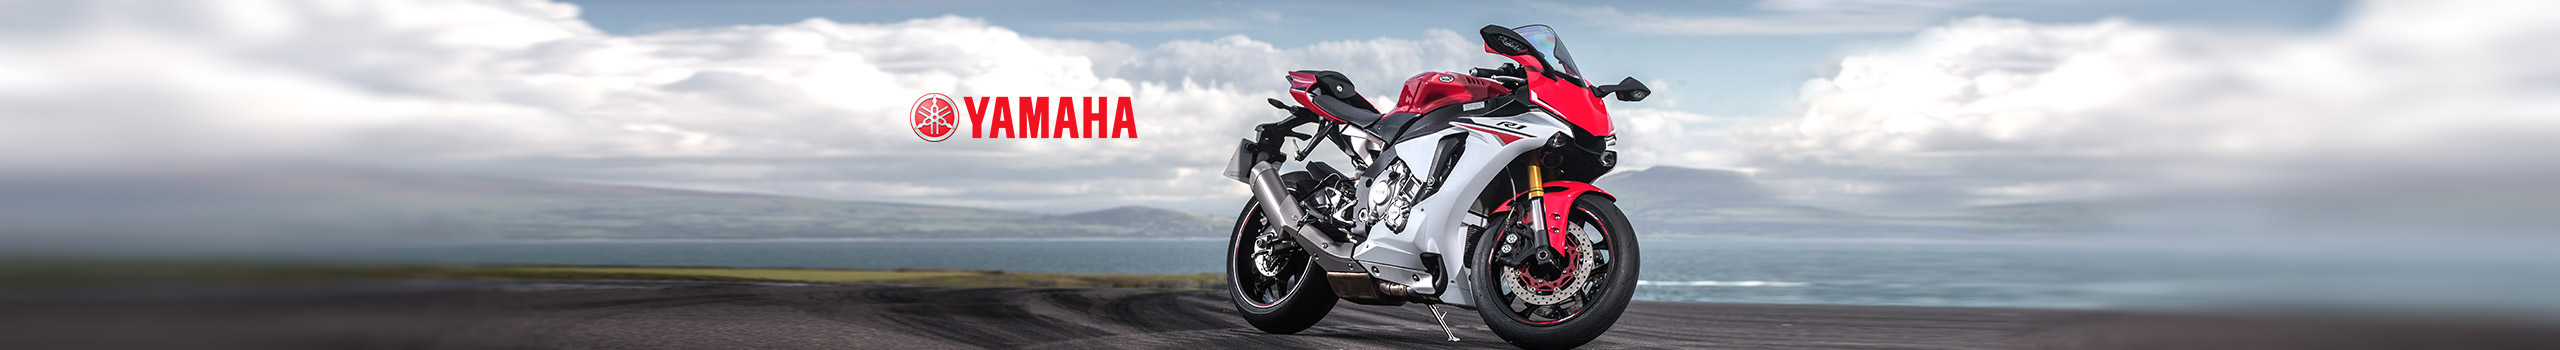 Yamaha R6 motorcycles for sale on Auto Trader Bikes